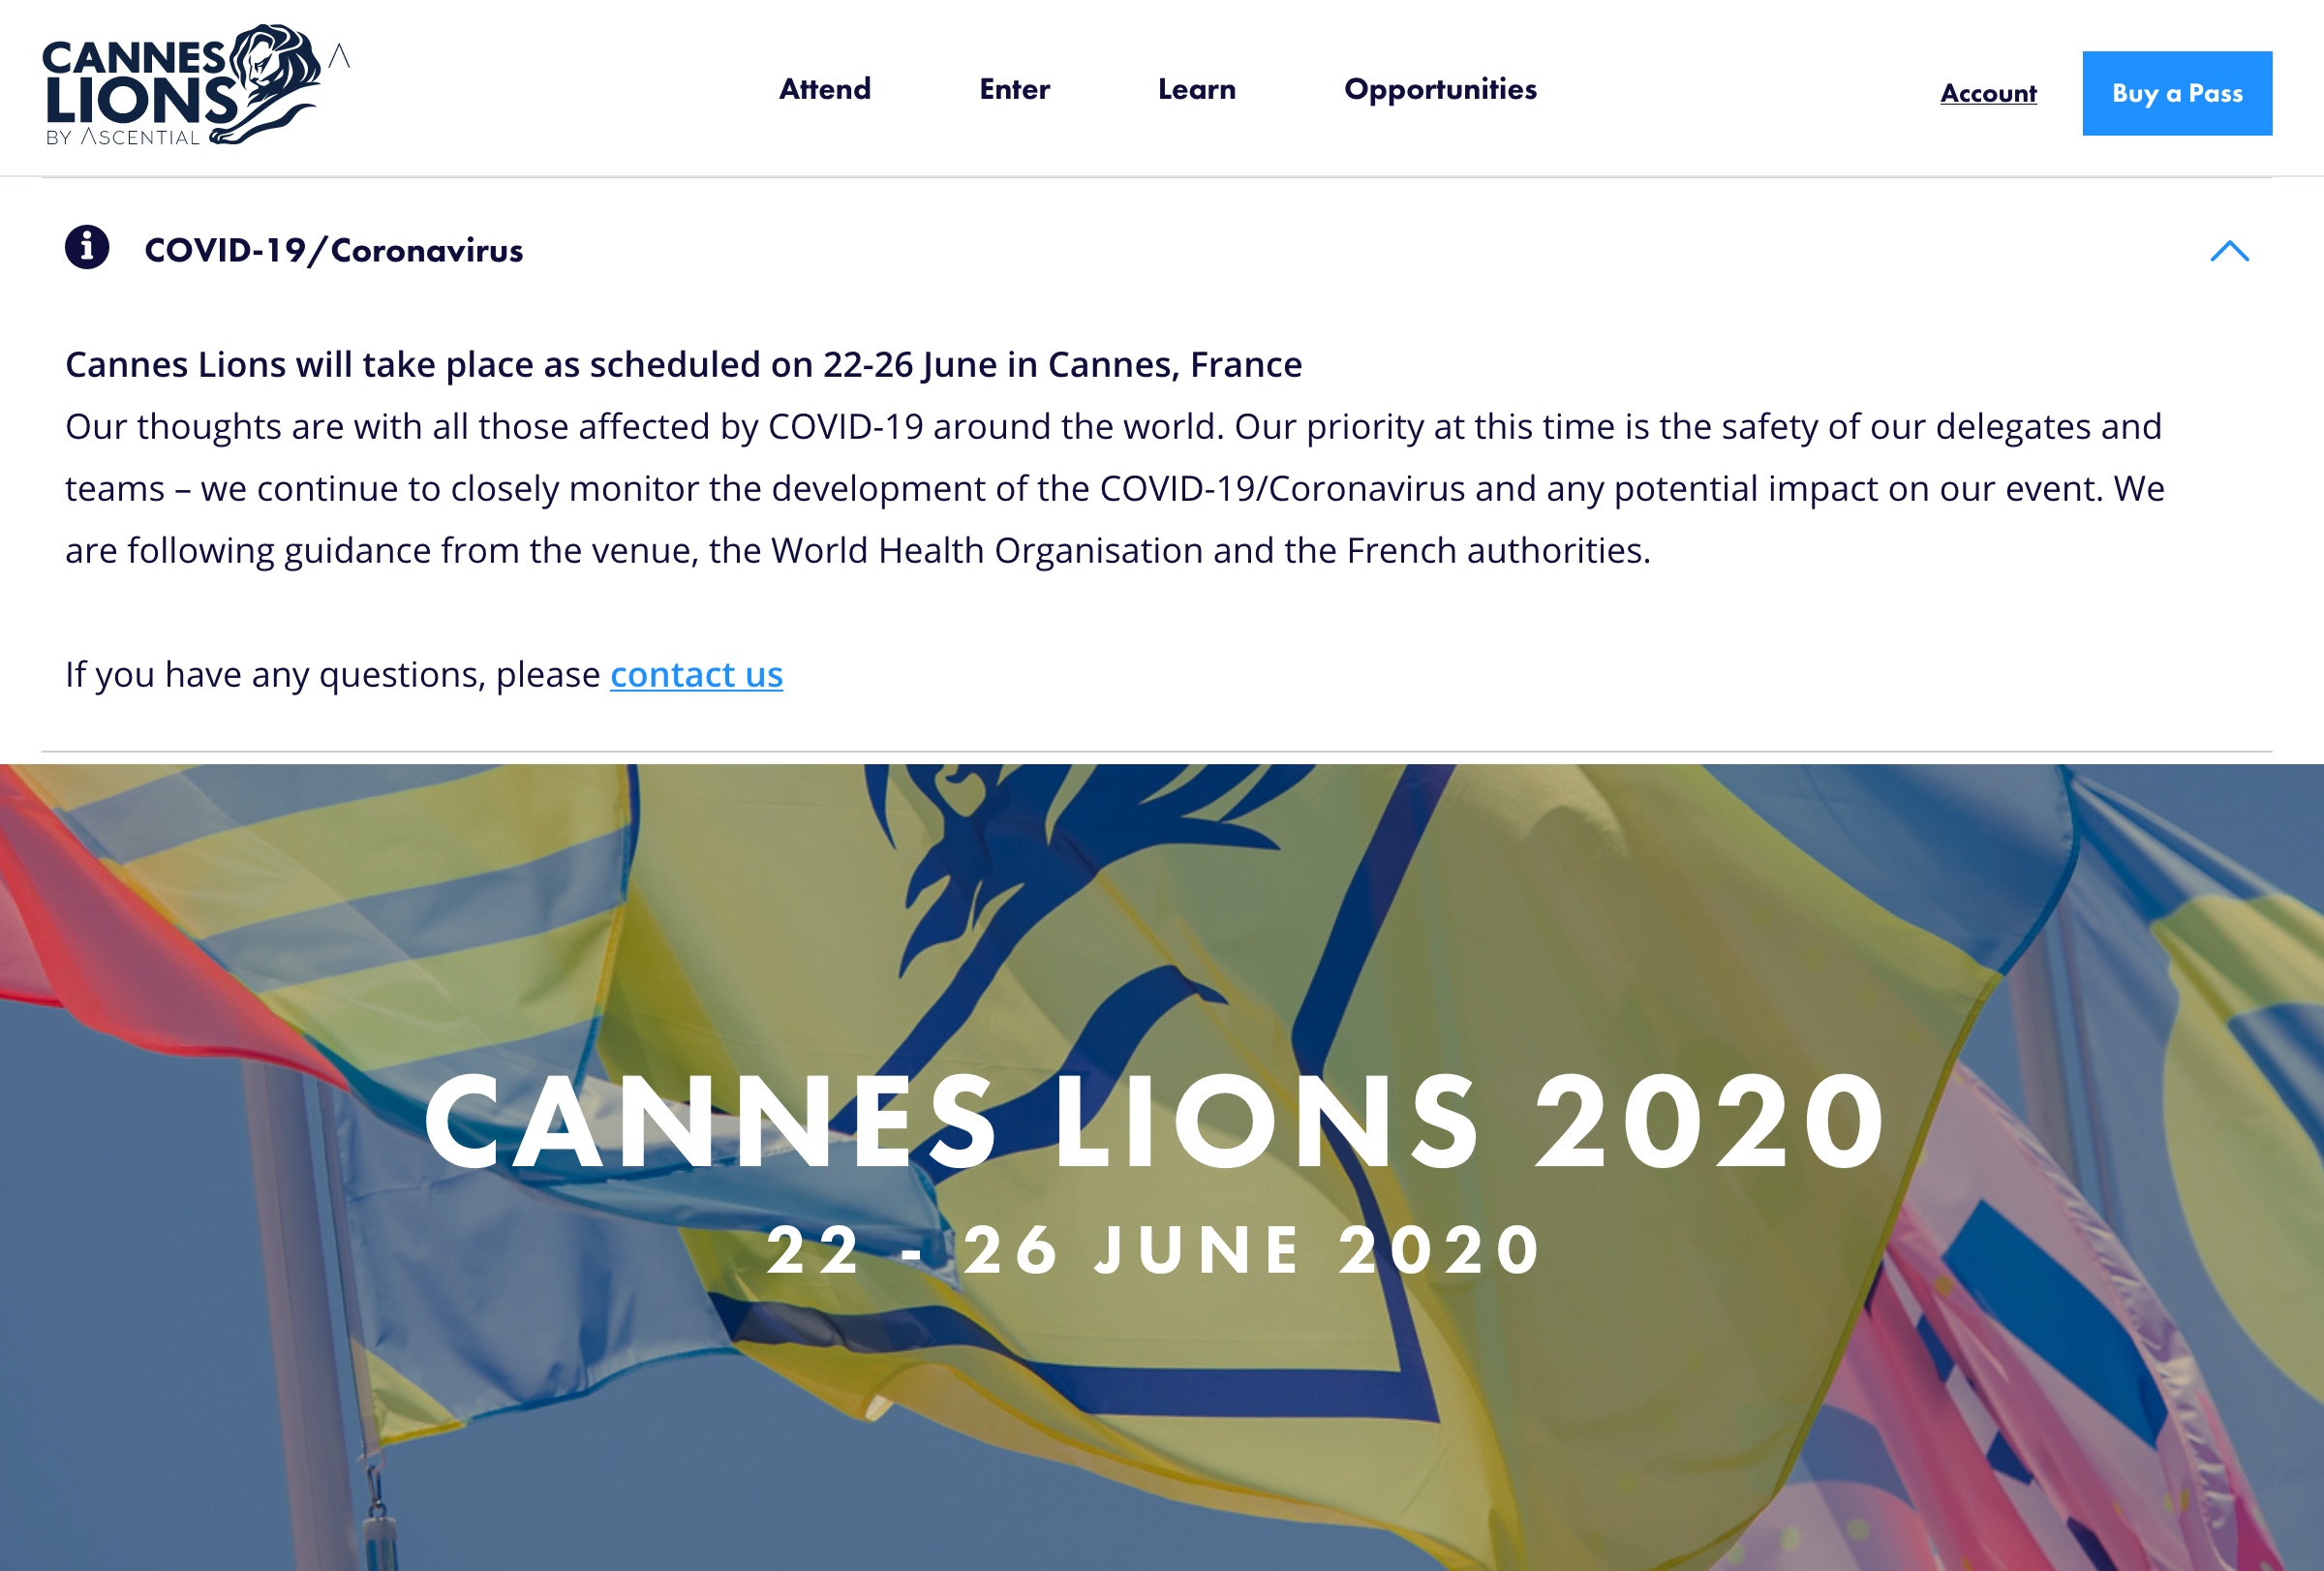 Cannes Lions will take place as scheduled on 22-26 June ~ subject to guidance from the venue, the World Health Organisation and the French authorities